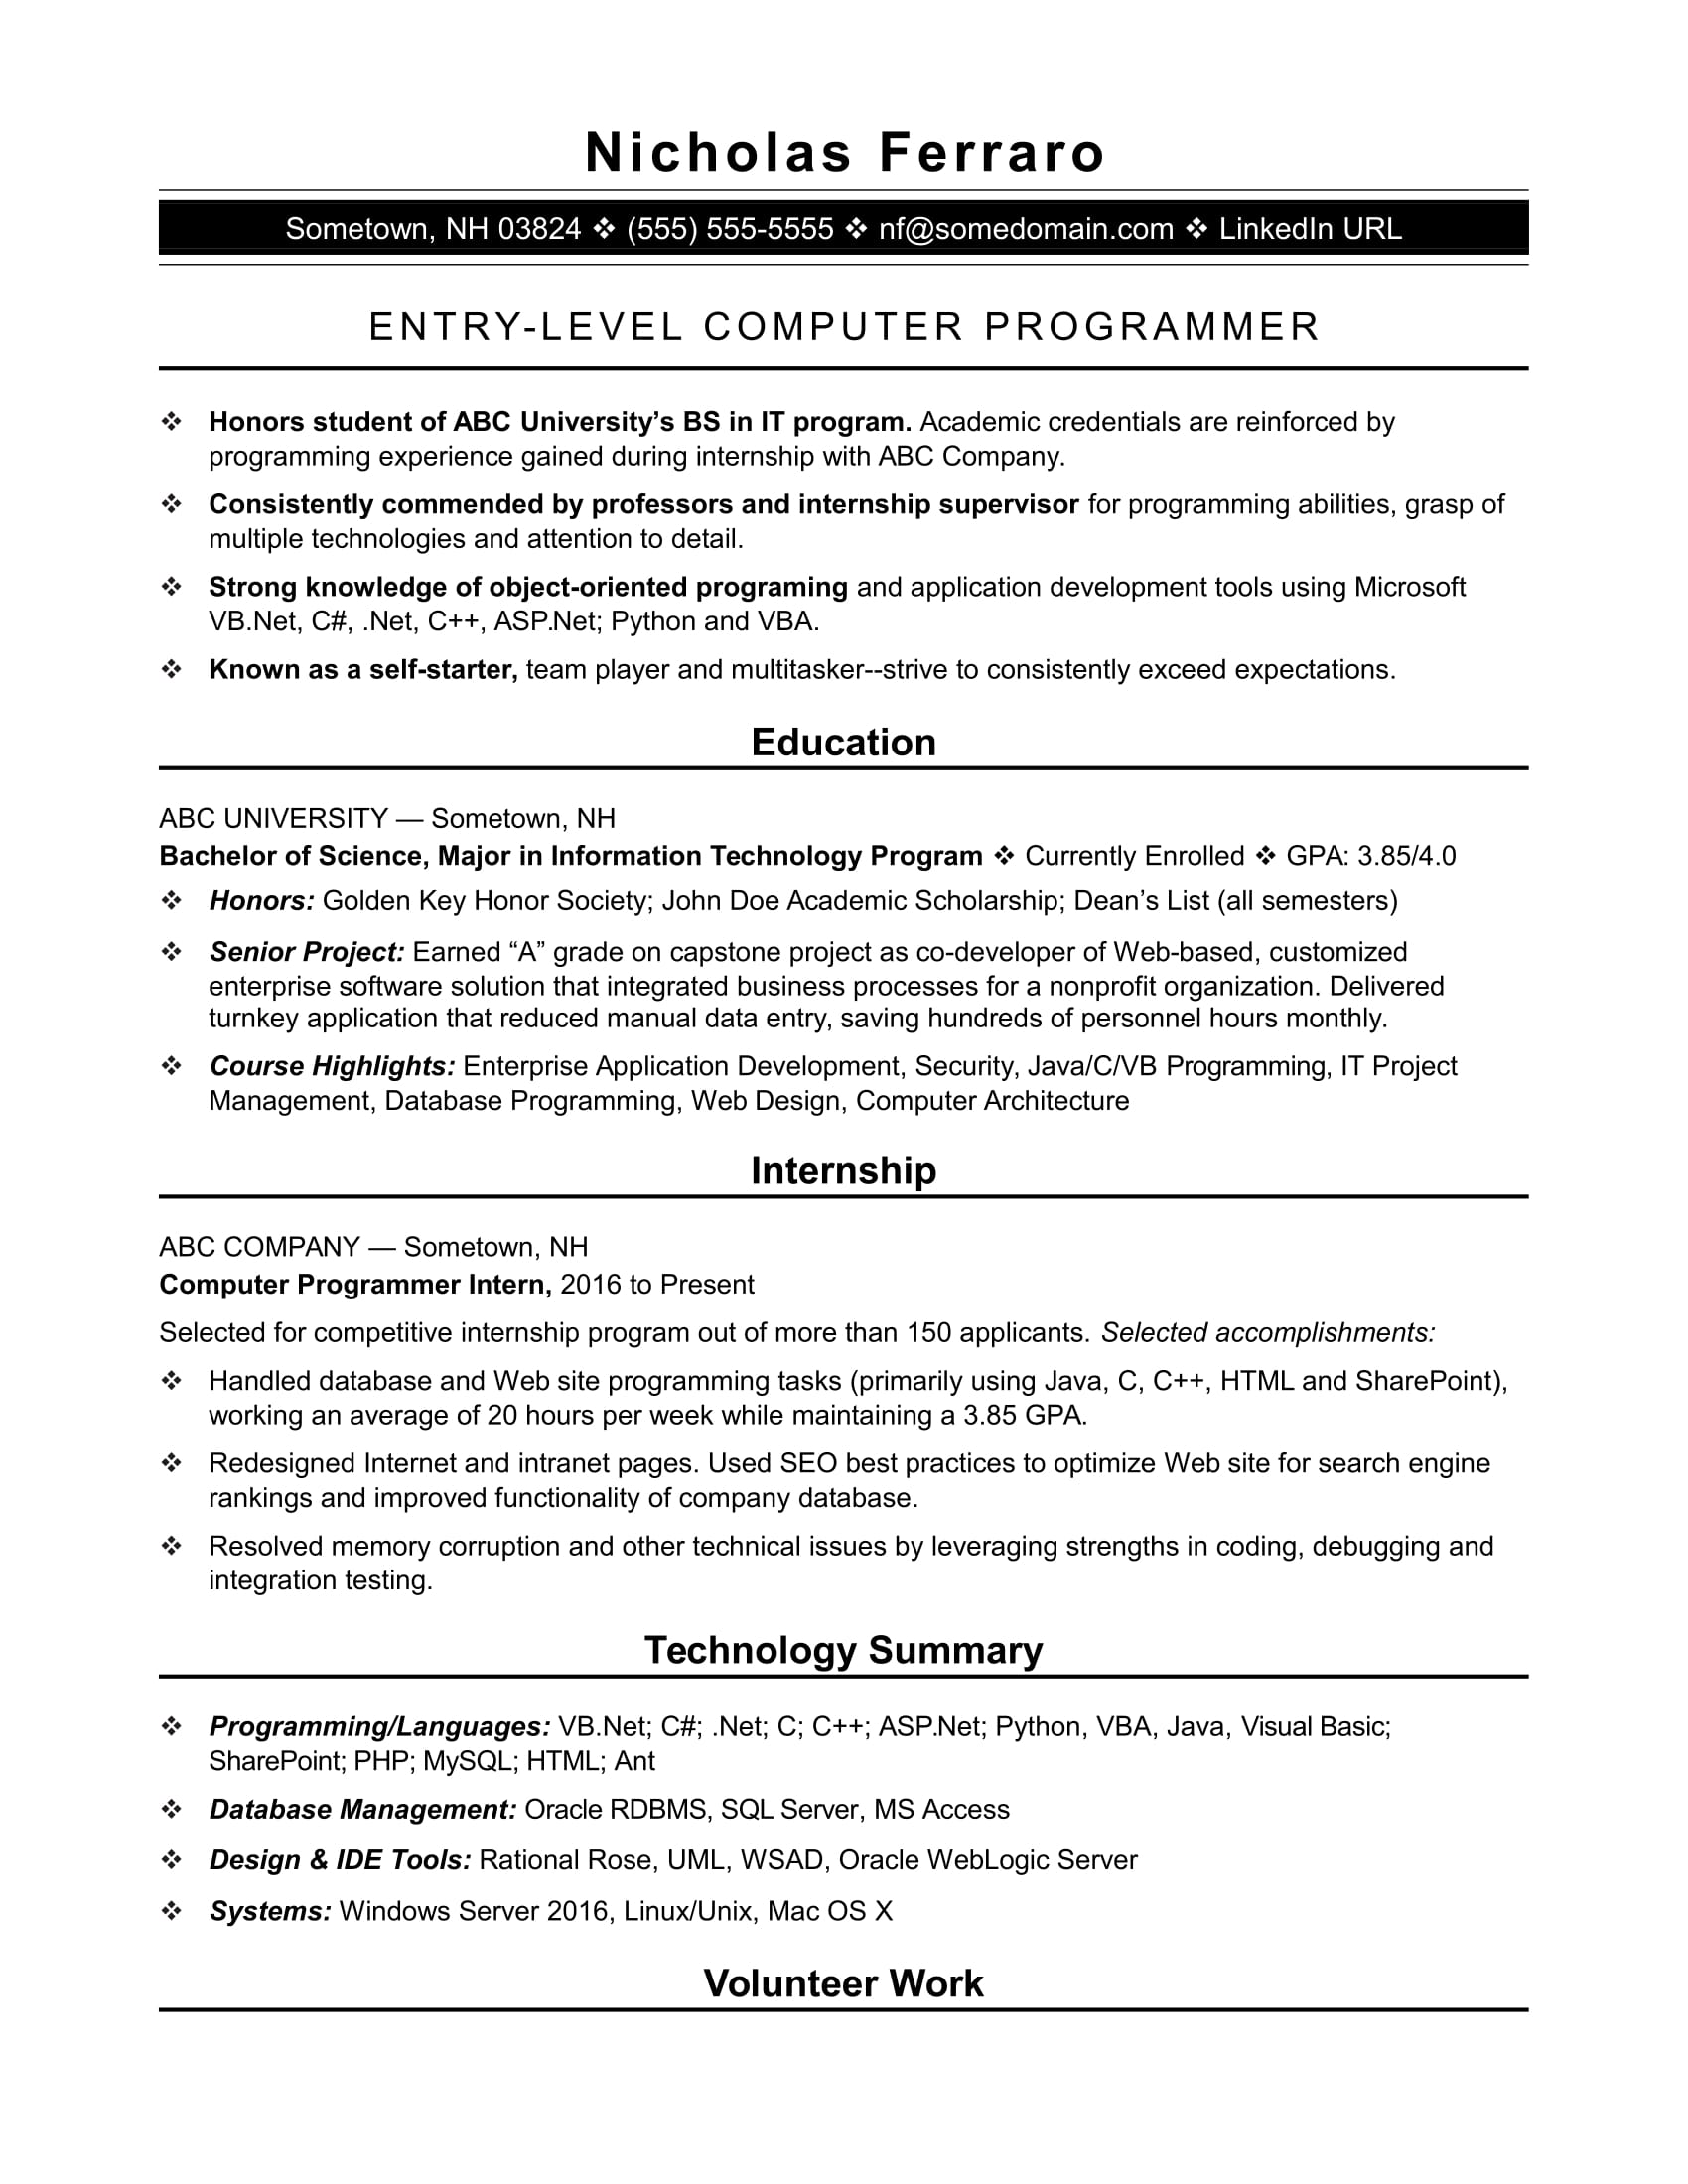 sample resume for an entry level computer programmer monster template matching machine Resume Computer Programmer Resume Template